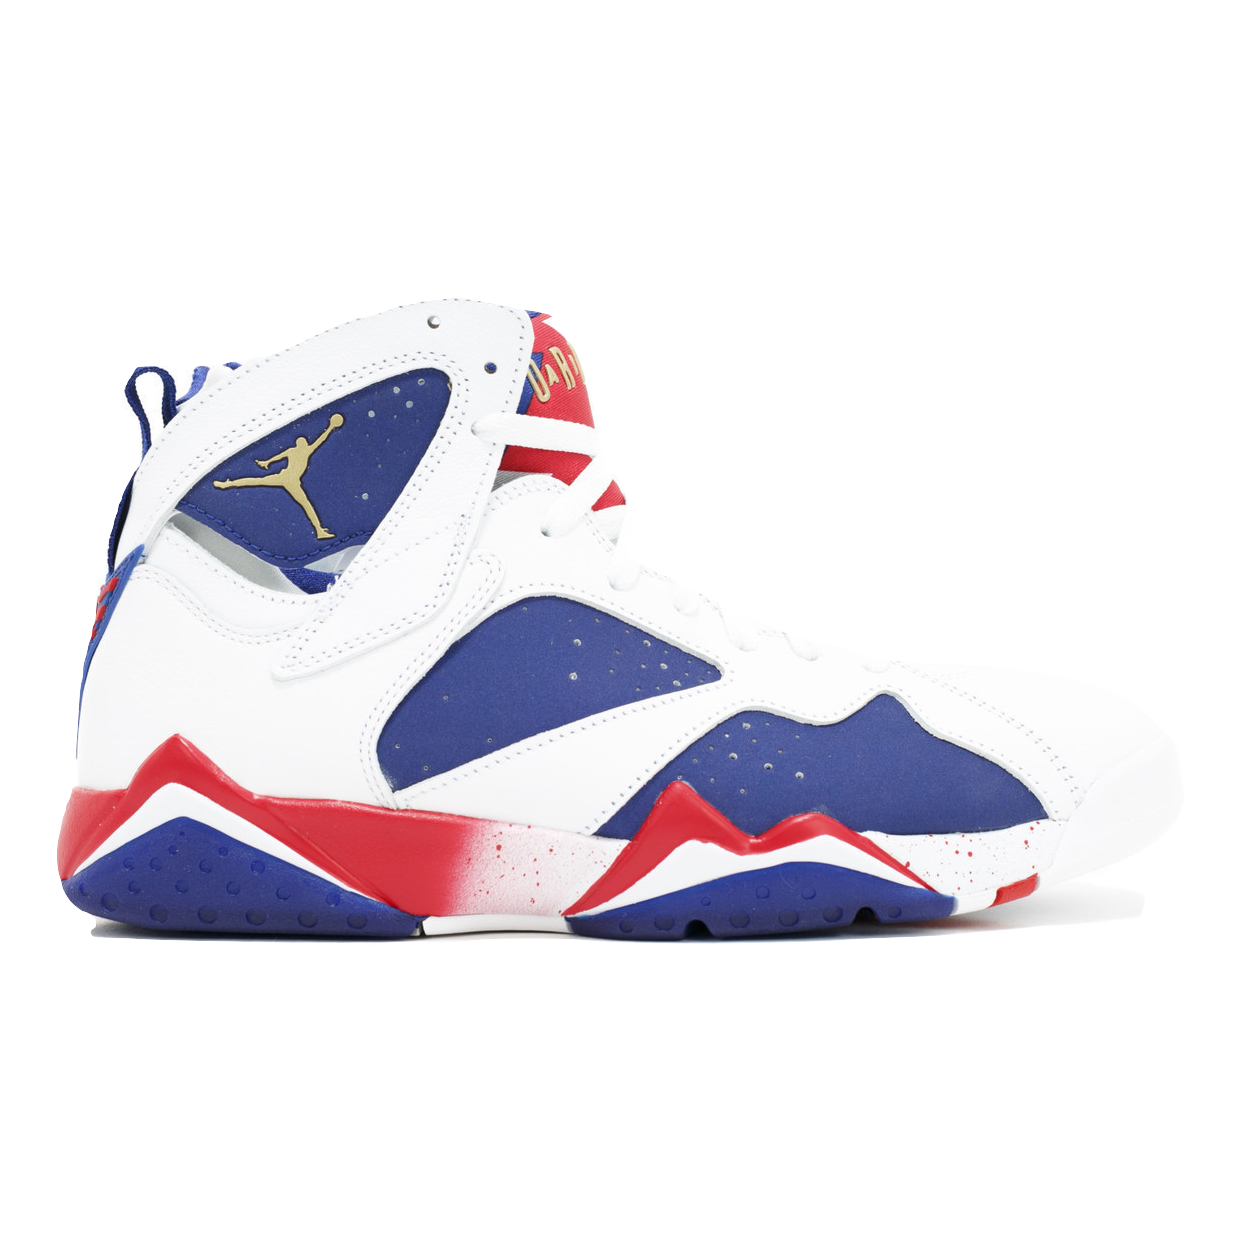 Air Jordan 7 Retro - Tinker Alternate Olympic - Used